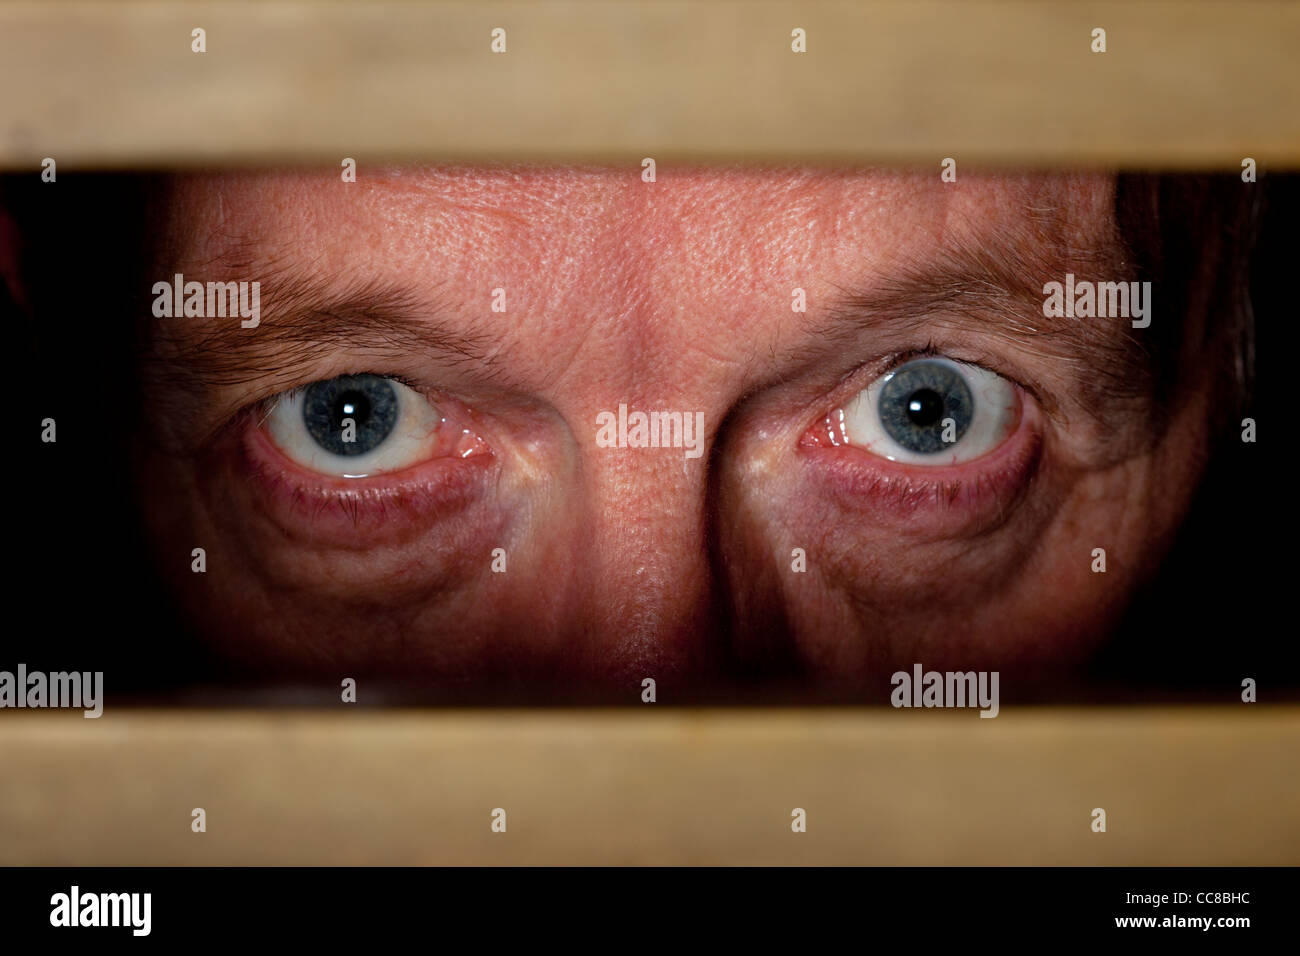 man-looking-through-letterbox-his-eyes-s